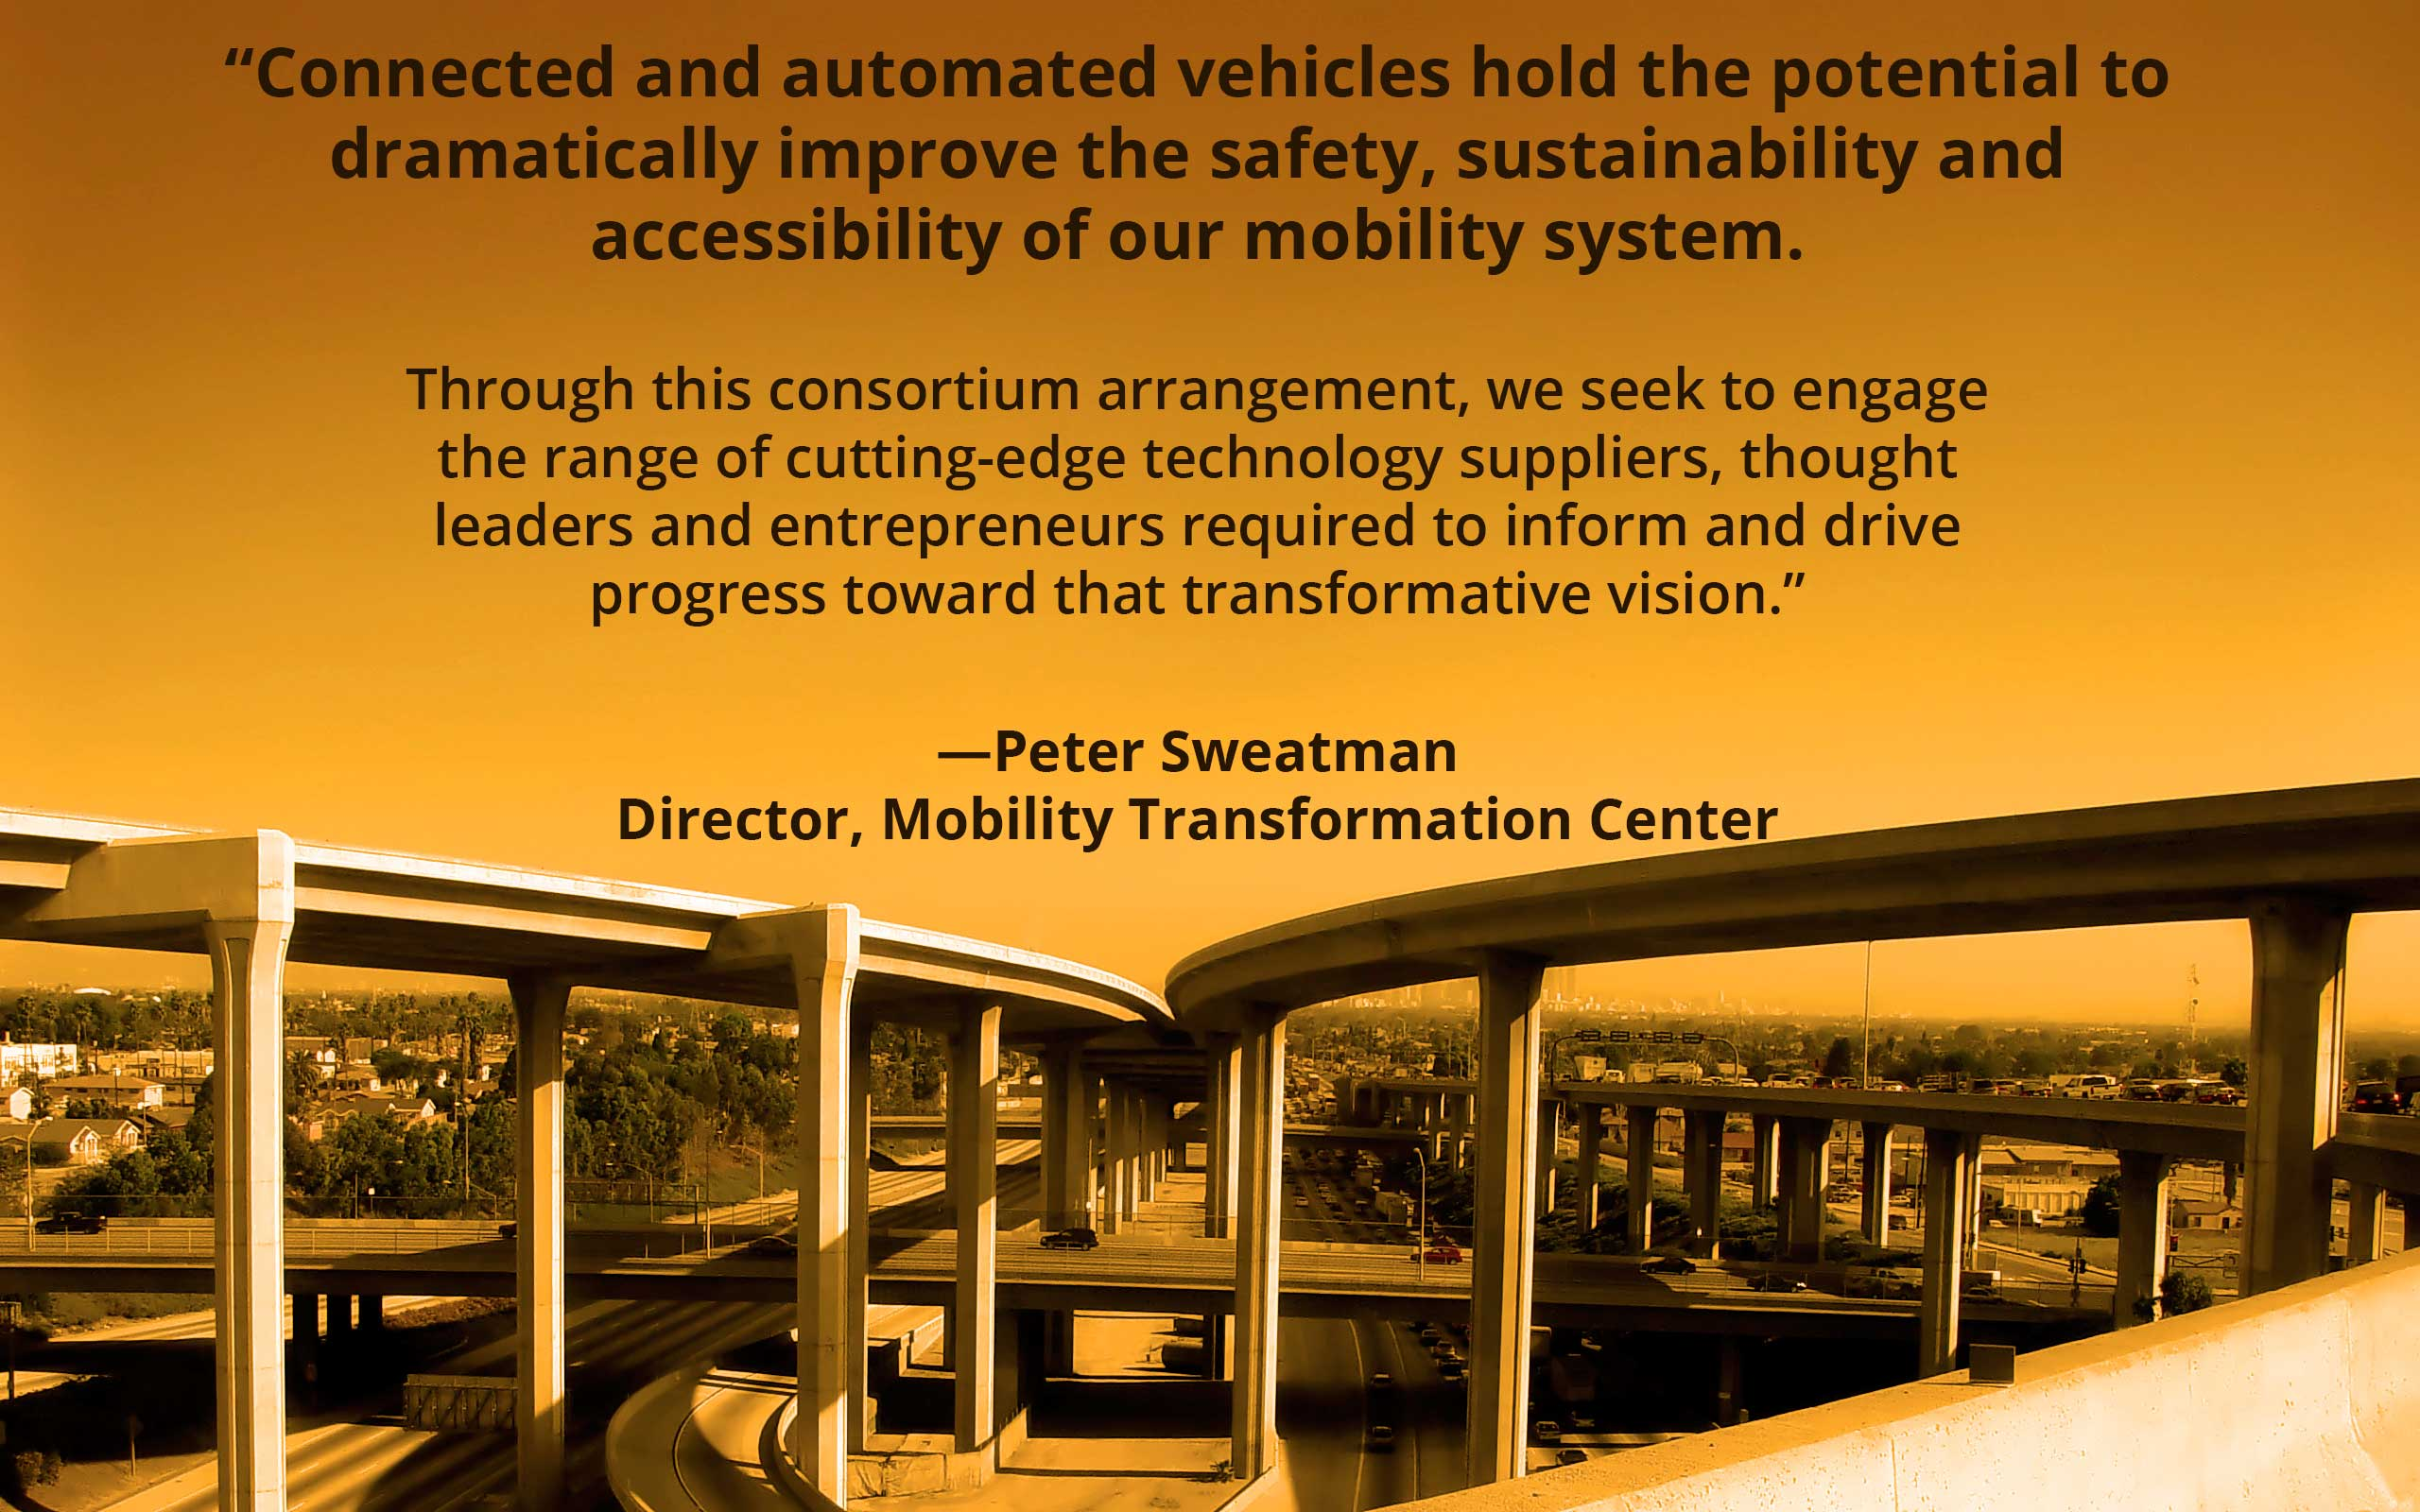 "Quote from Peter Sweatman Director, Mobility Transformation Center: ""Connected and automated vehicles hold the potential to  dramatically improve the safety, sustainability and  accessibility of our mobility system.  Through this consortium arrangement, we seek to engage  the range of cutting-edge technology suppliers, thought leaders and entrepreneurs required to inform and drive  progress toward that transformative vision"" over elevated highways converging."